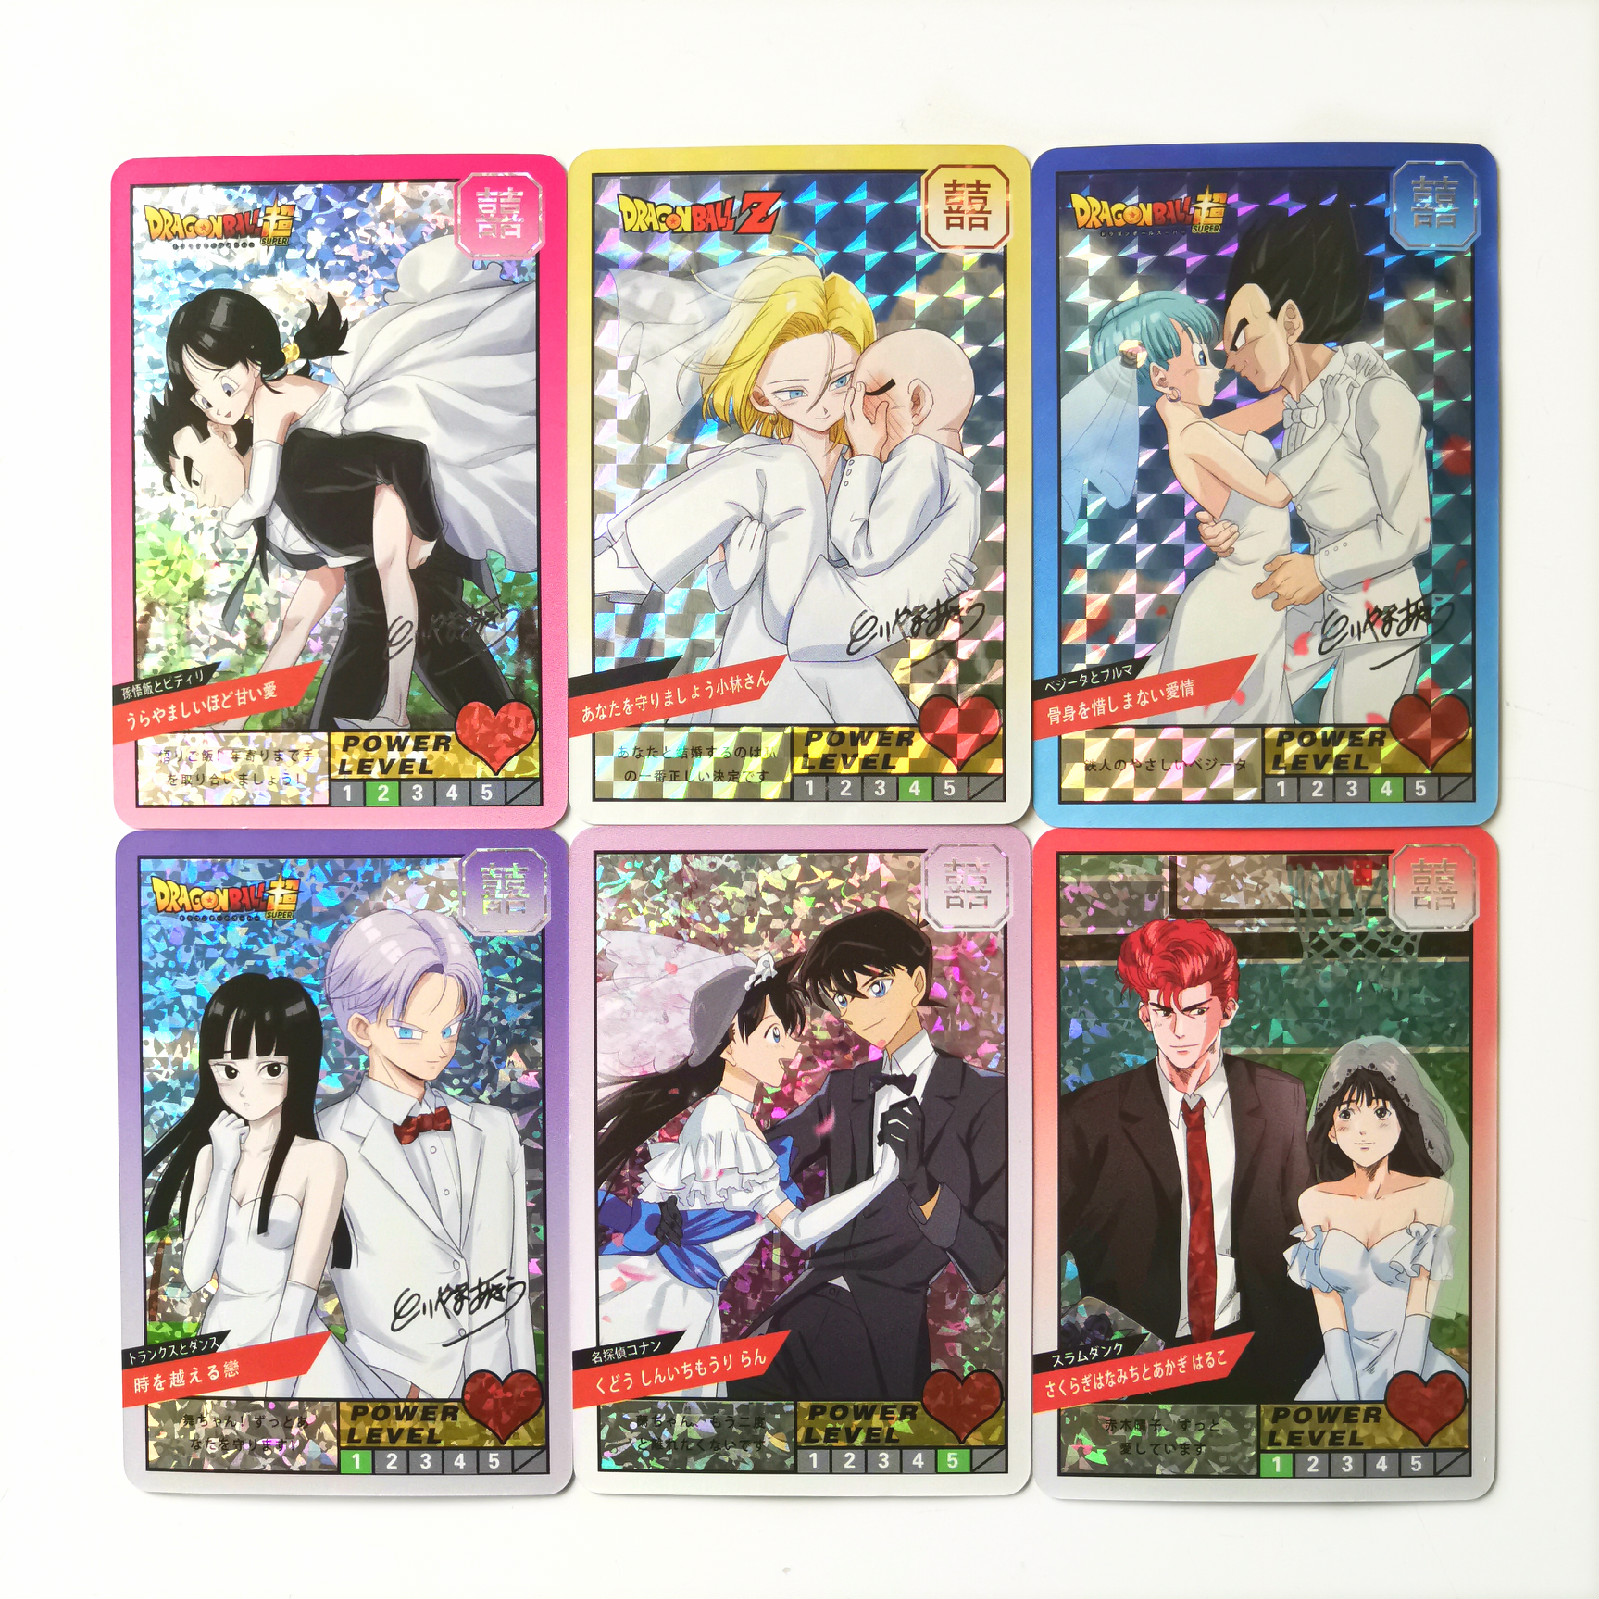 6 Styles Marry Super Dragon Ball Z Detective Conan SLAM DUNK Limited Special Heroes Battle Card Vegeta Game Collection Cards